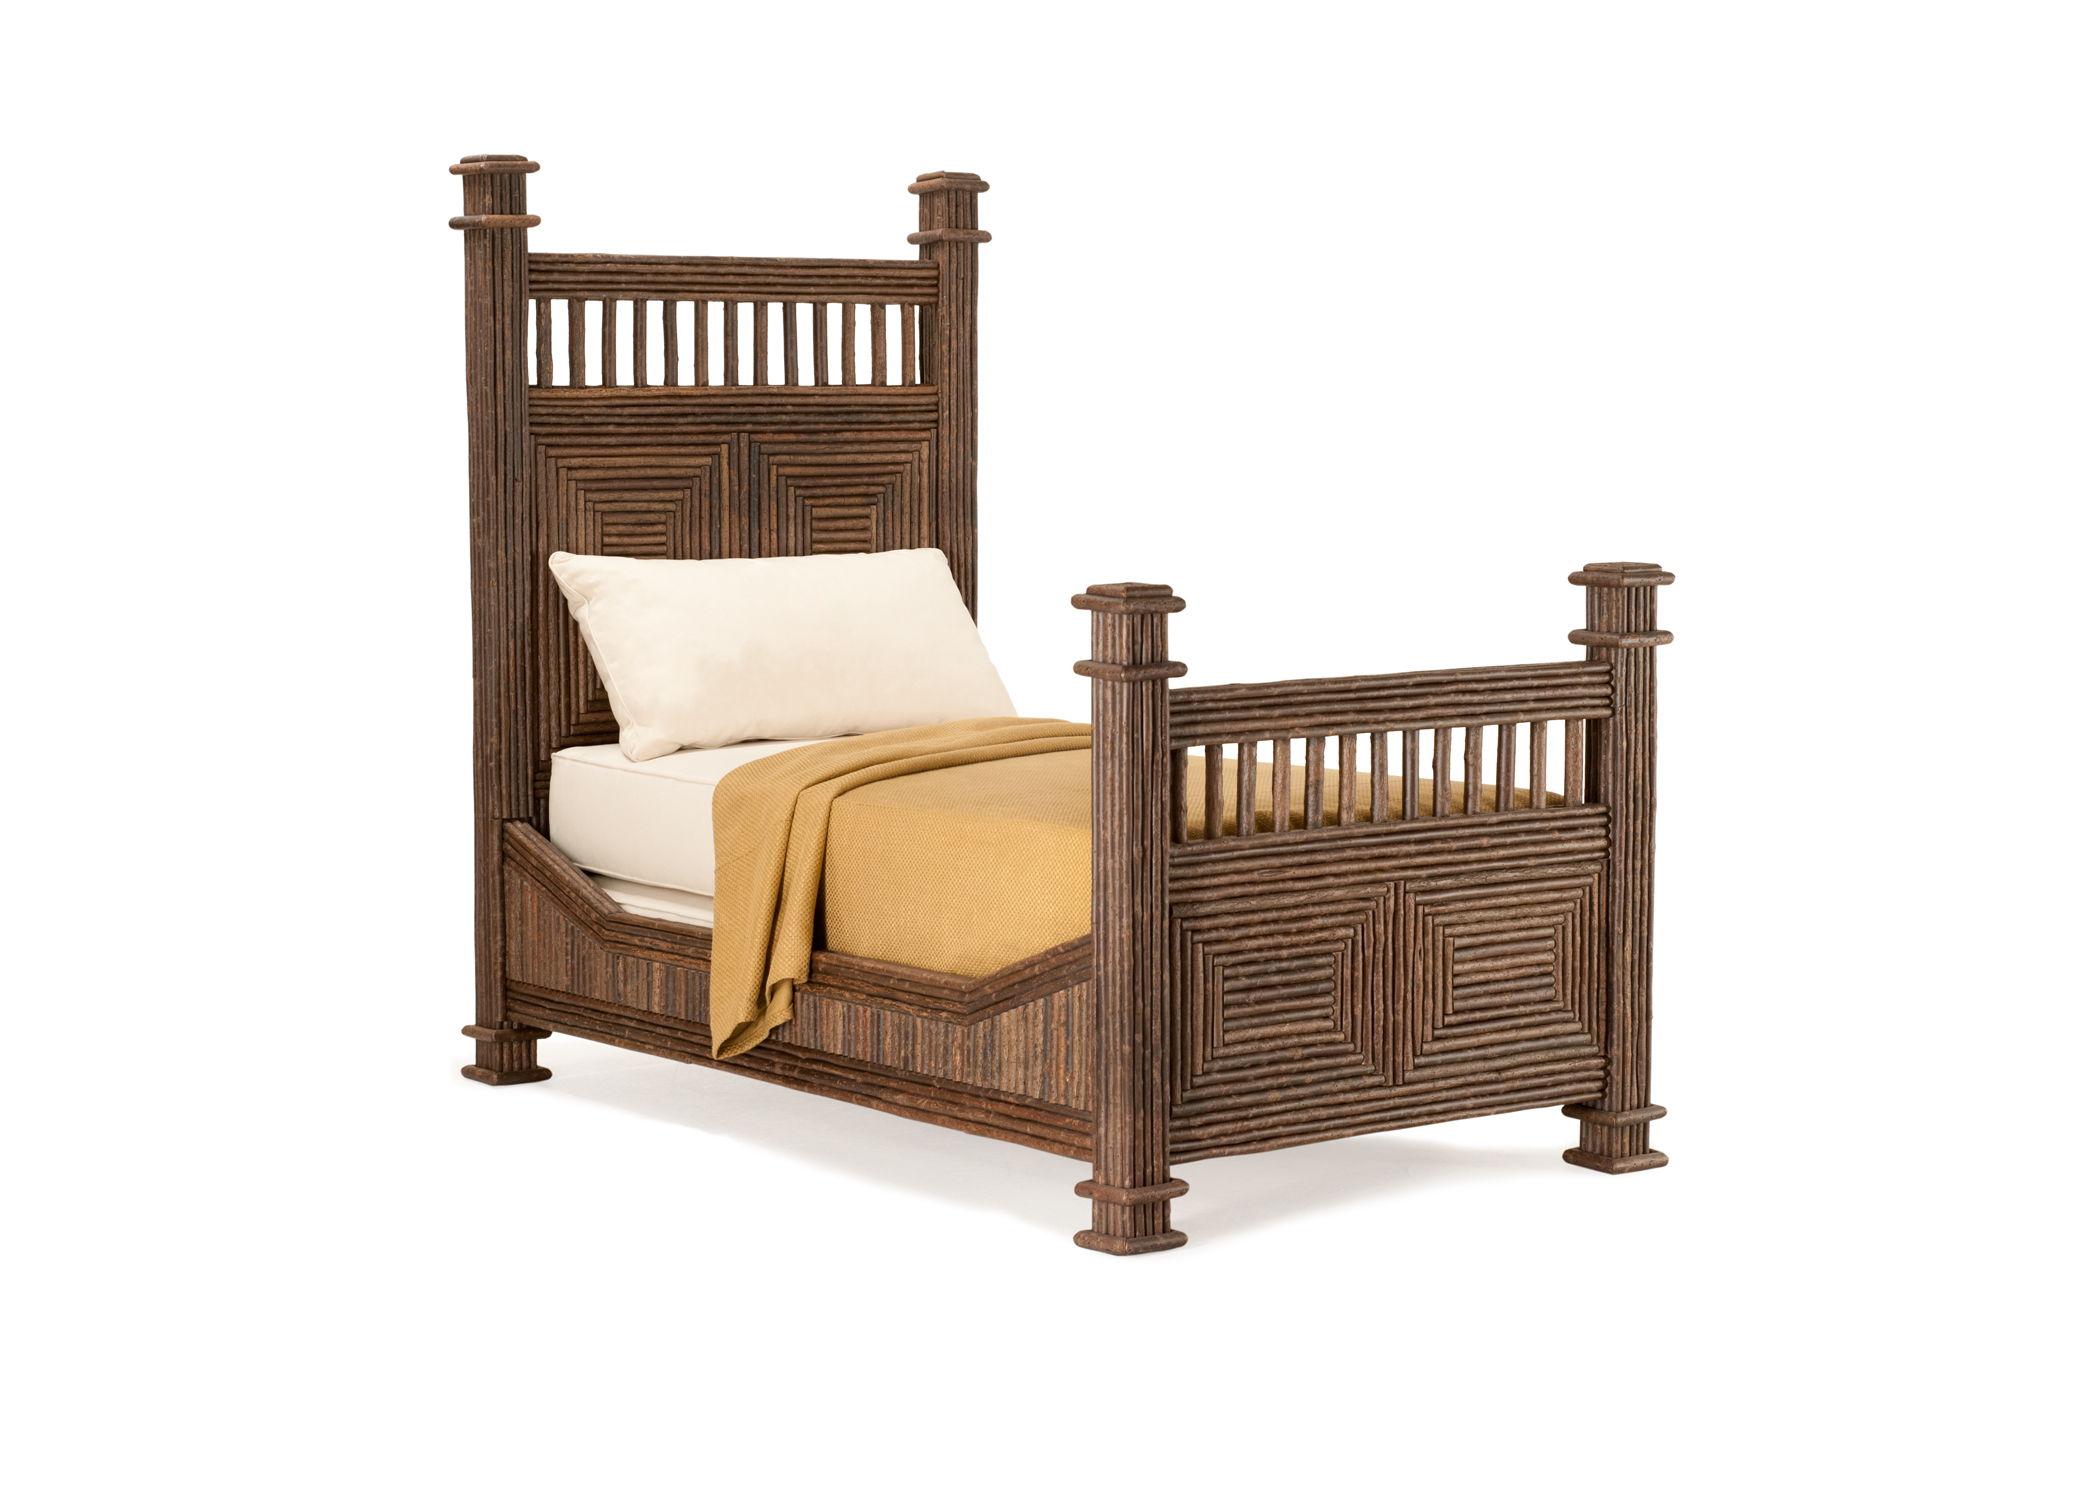 4204 Bed La Lune Collection Rustic Furniture